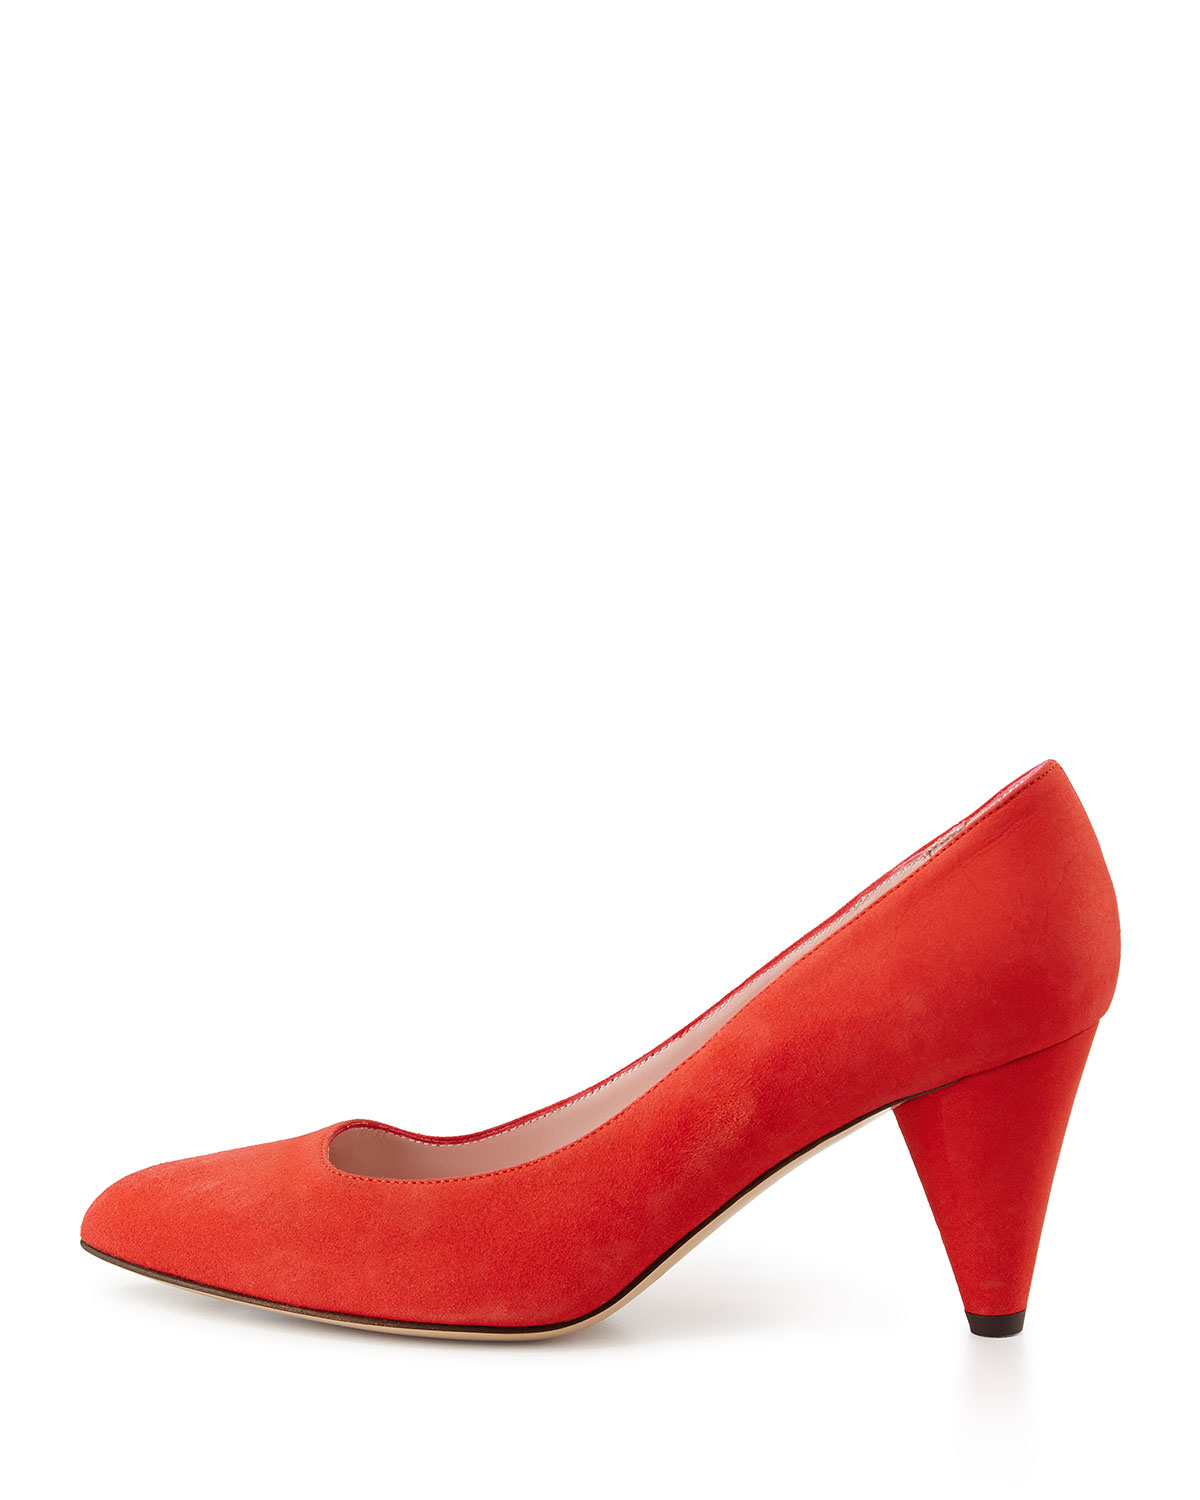 5c0e78a97d01 Lyst - Kate Spade New York Yanni Suede Mid-Heel Pump in Red